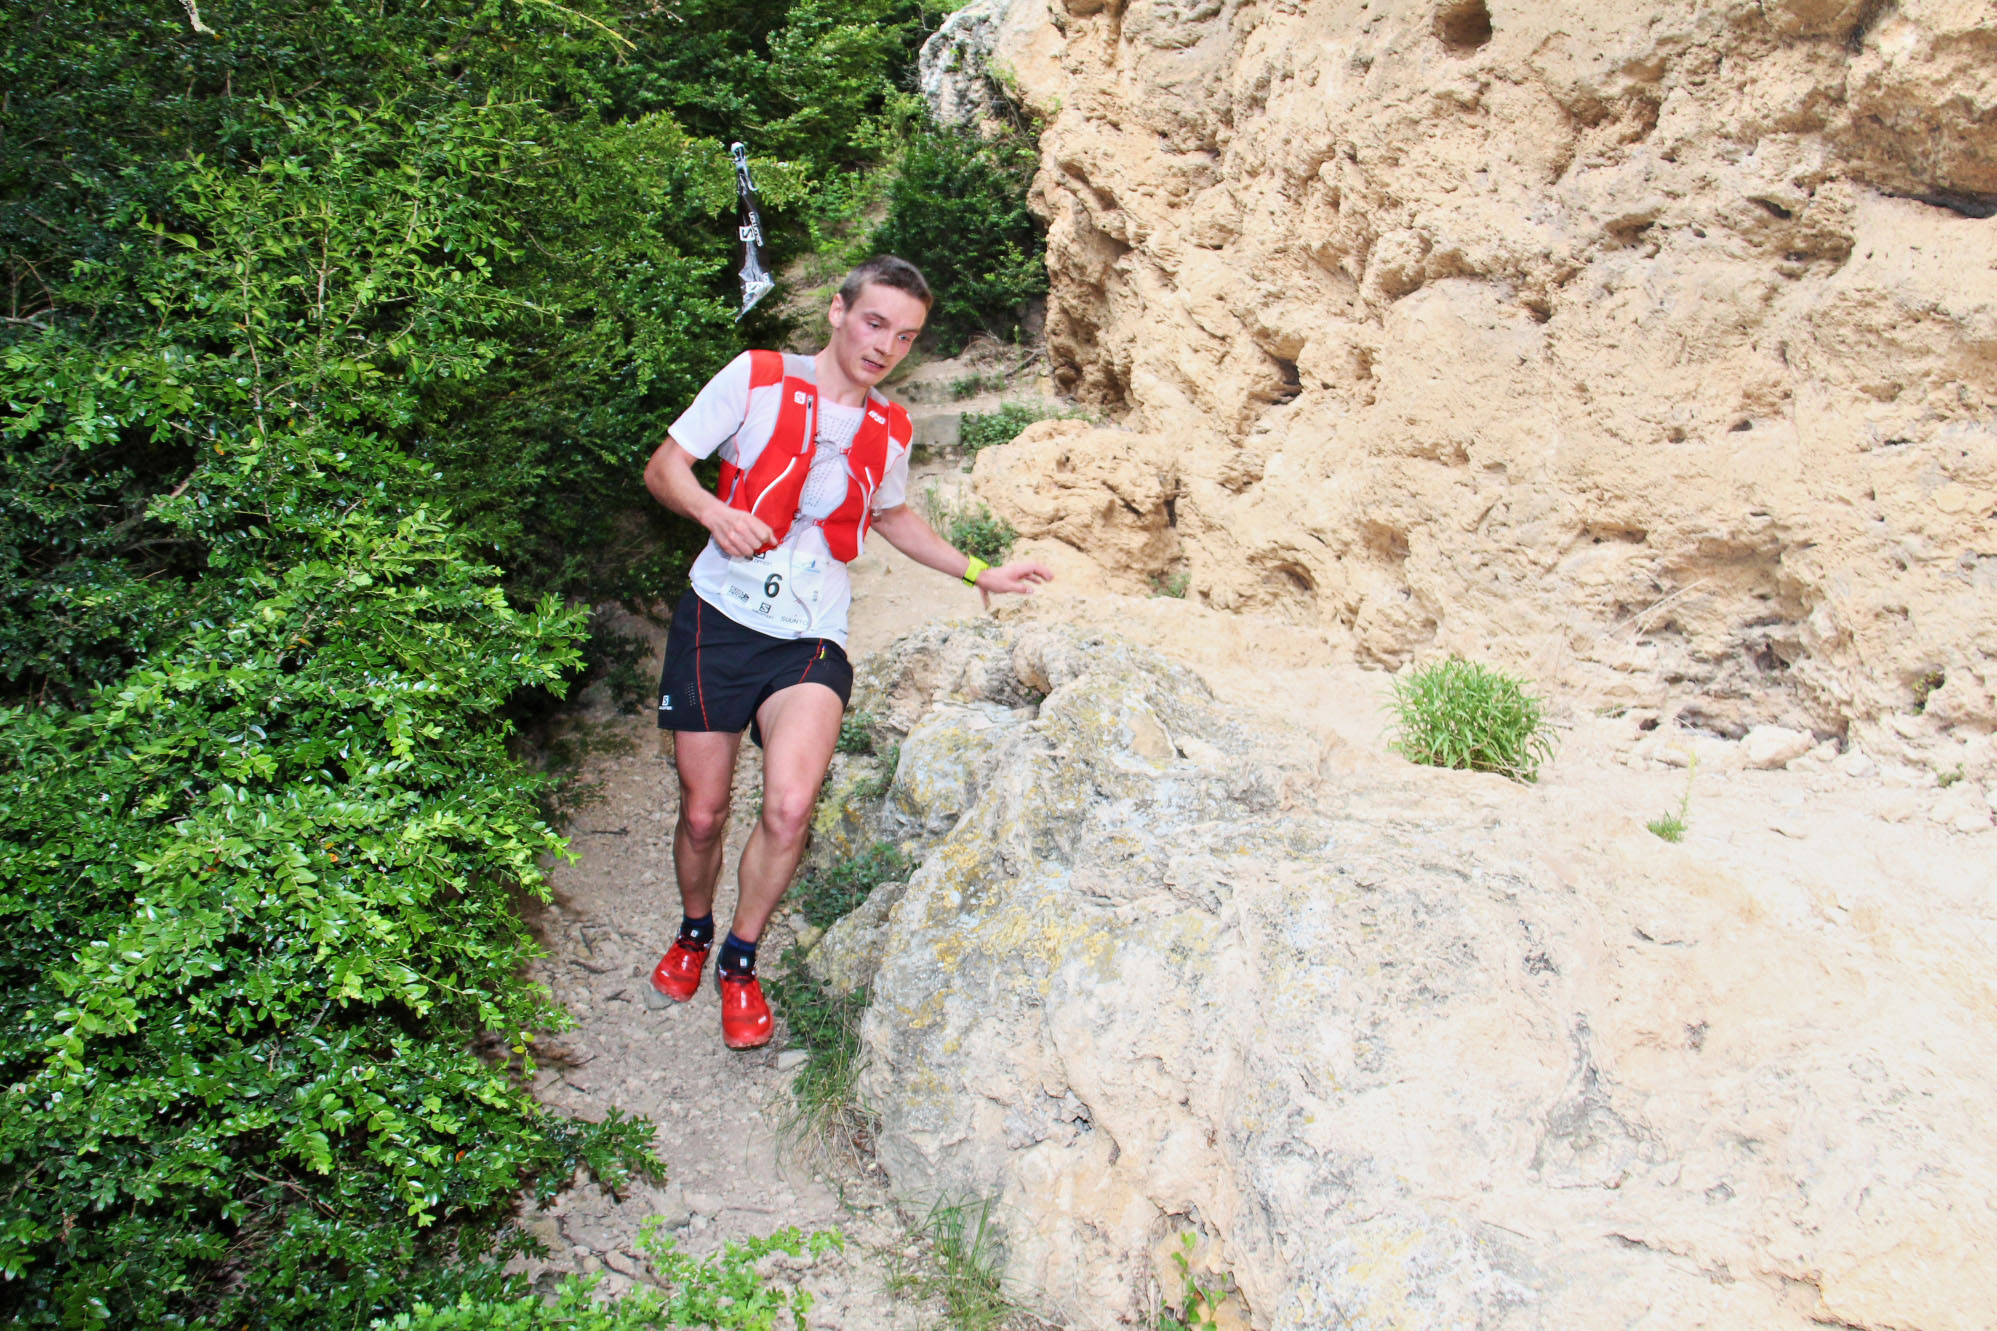 2 Gédéon Pochat photo Goran Mojicevic Passion Trail - SALOMON OVER THE MOUNTAIN RUNNING CHALLENGE : DESTINATION UBAYE ! 07/08/2016